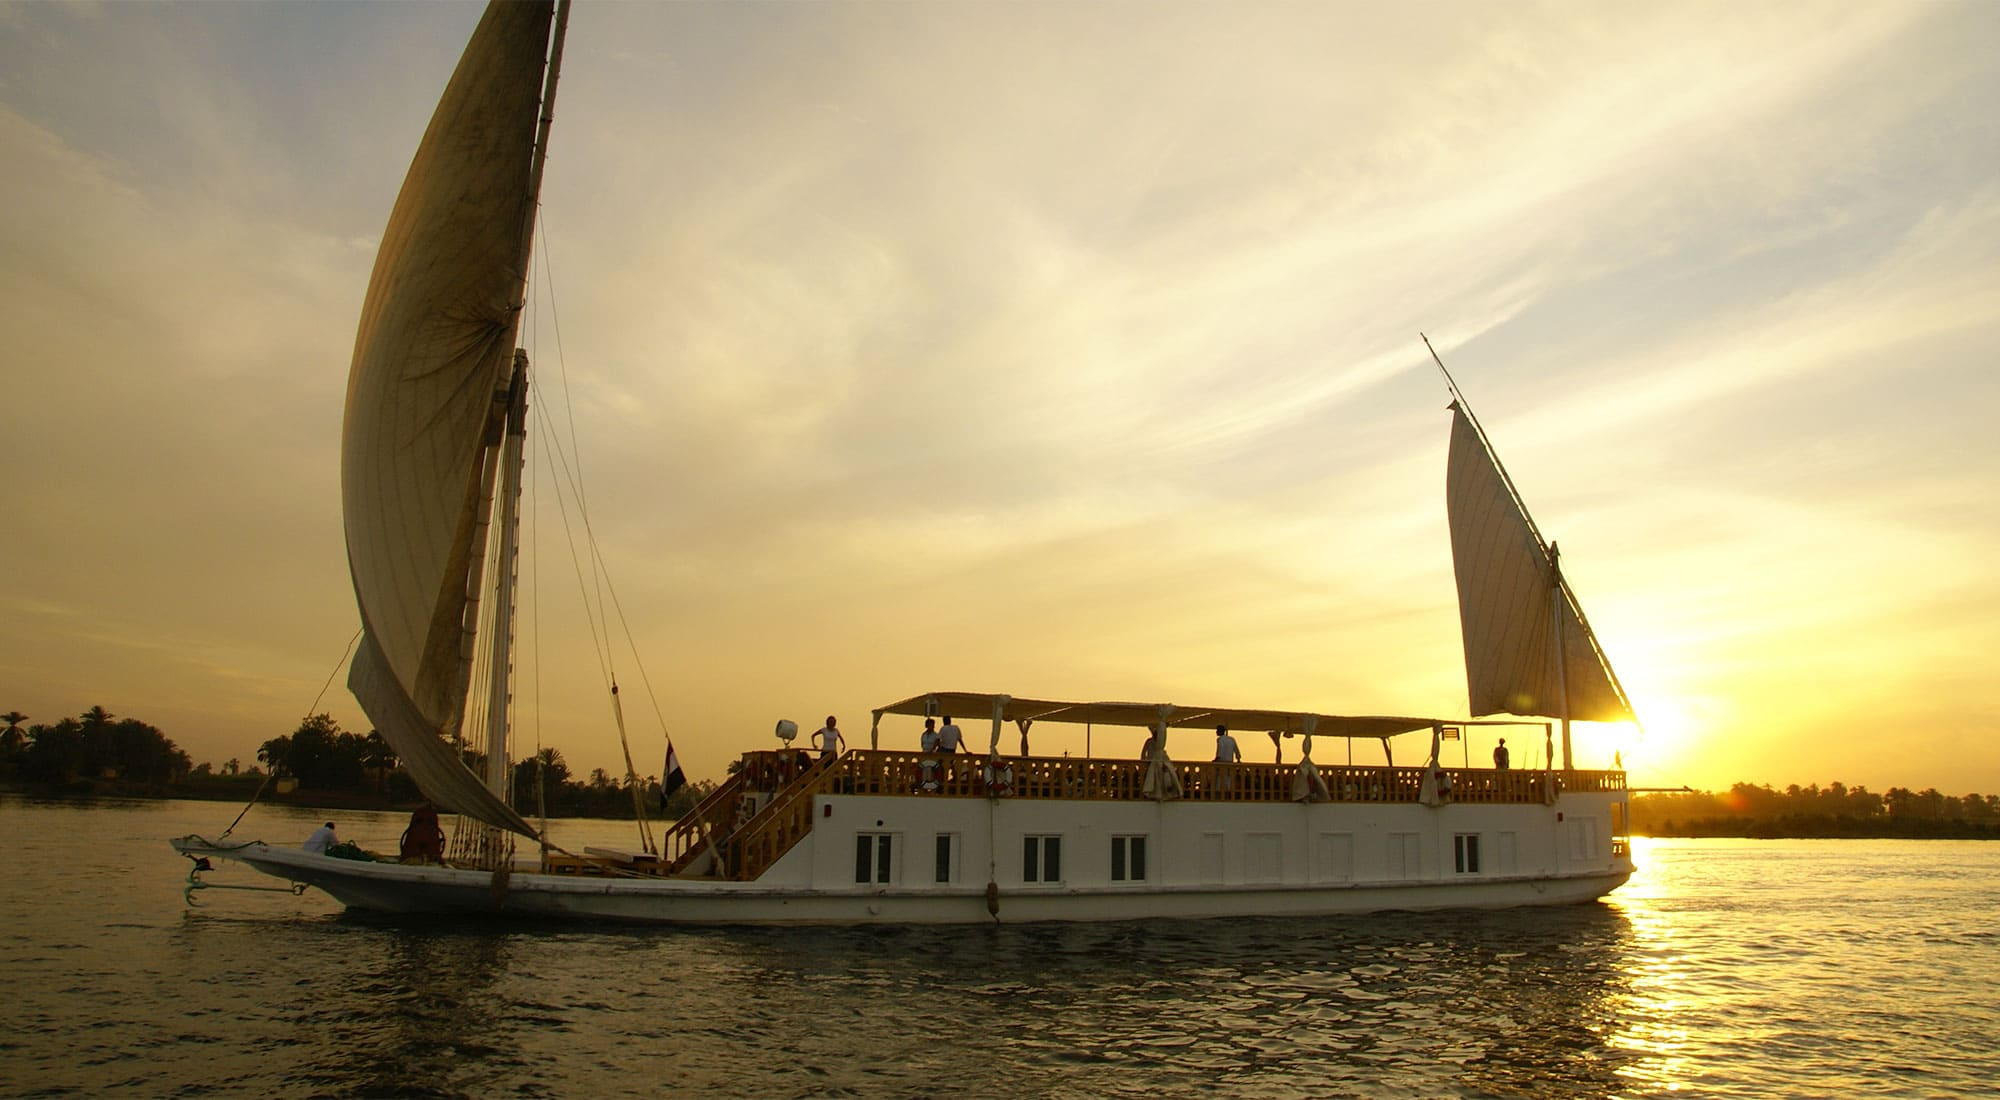 8-Day Dahabiya Nile Cruise